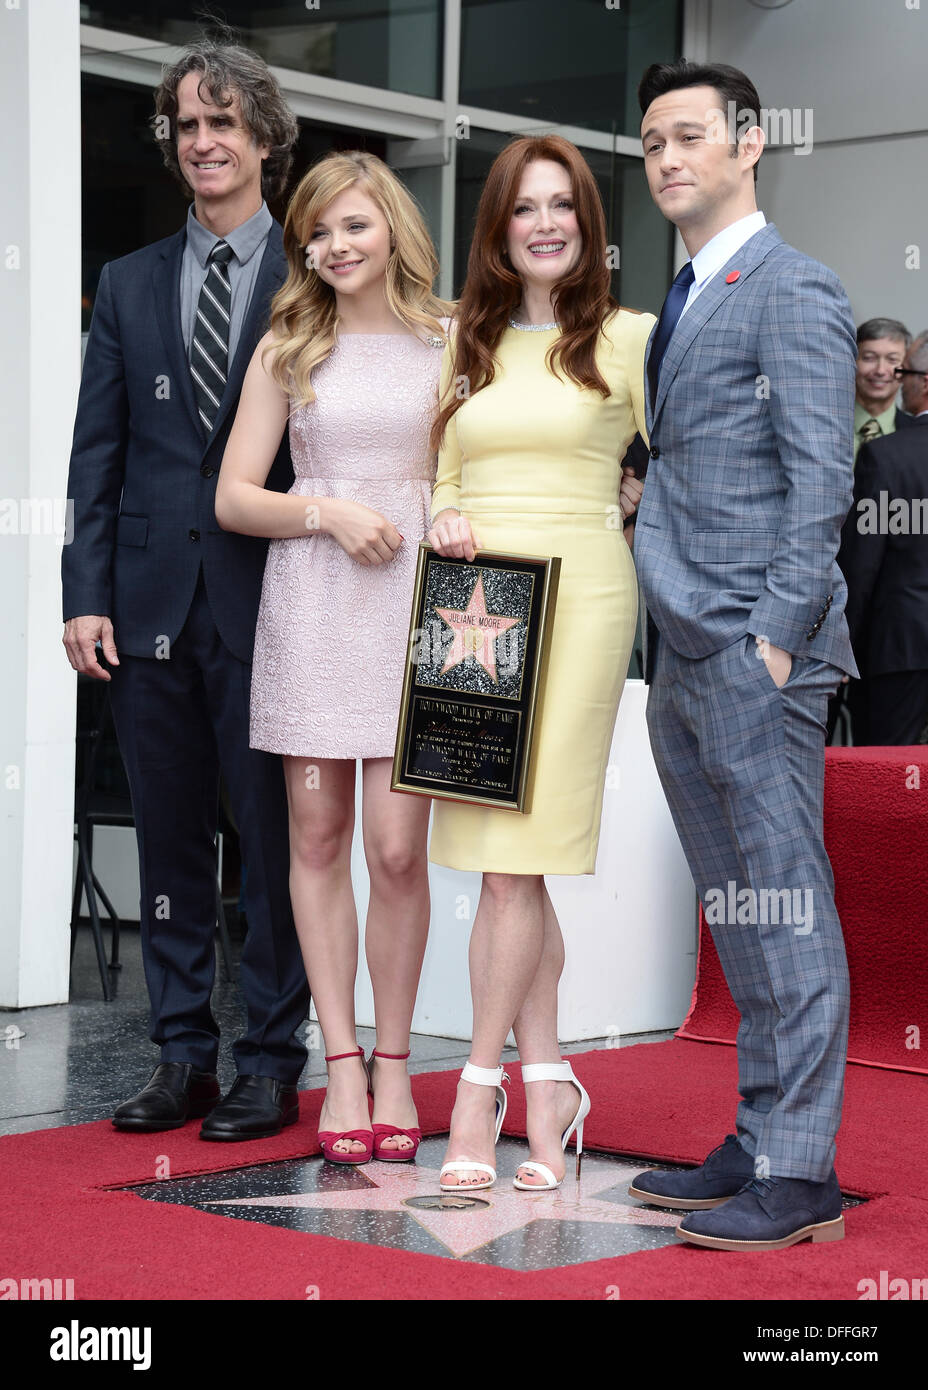 Hollywood Walk of Fame, Los Angeles, USA . 03rd Oct, 2013. Julianne Moore (yellow) pictured with Jay Roach, Chloe Grace Moretz and Joseph Gordon Levitt as she was honored with a star on the Hollywood Walk of Fame, Hollywood, USA. Oct 3rd 2013 Credit:  Sydney Alford/Alamy Live News - Stock Image